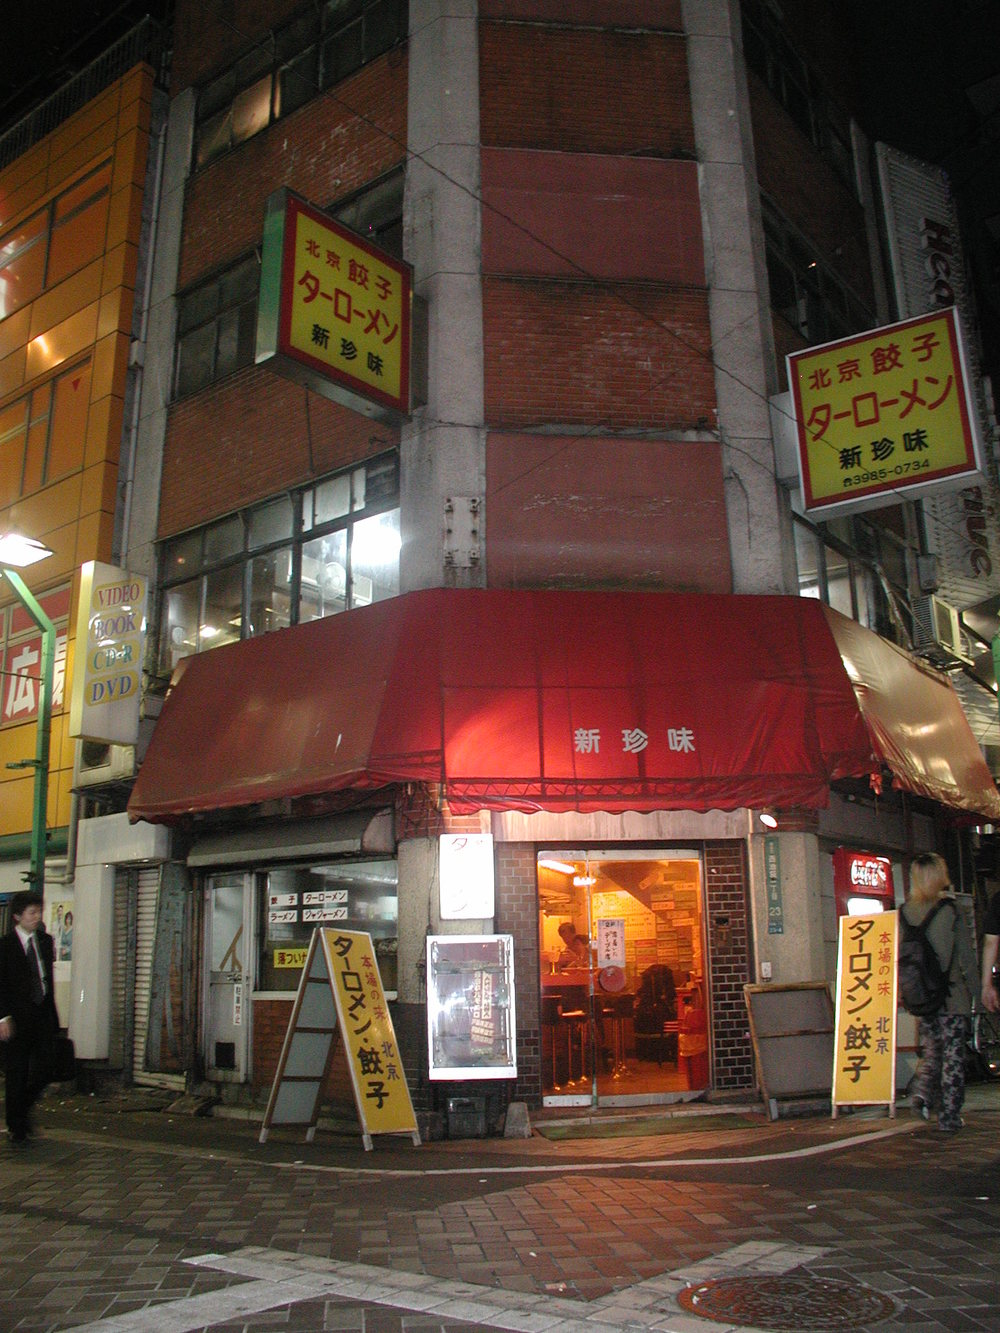 Su Beng's noodle shop in Tokyo, Japan (August 2005)